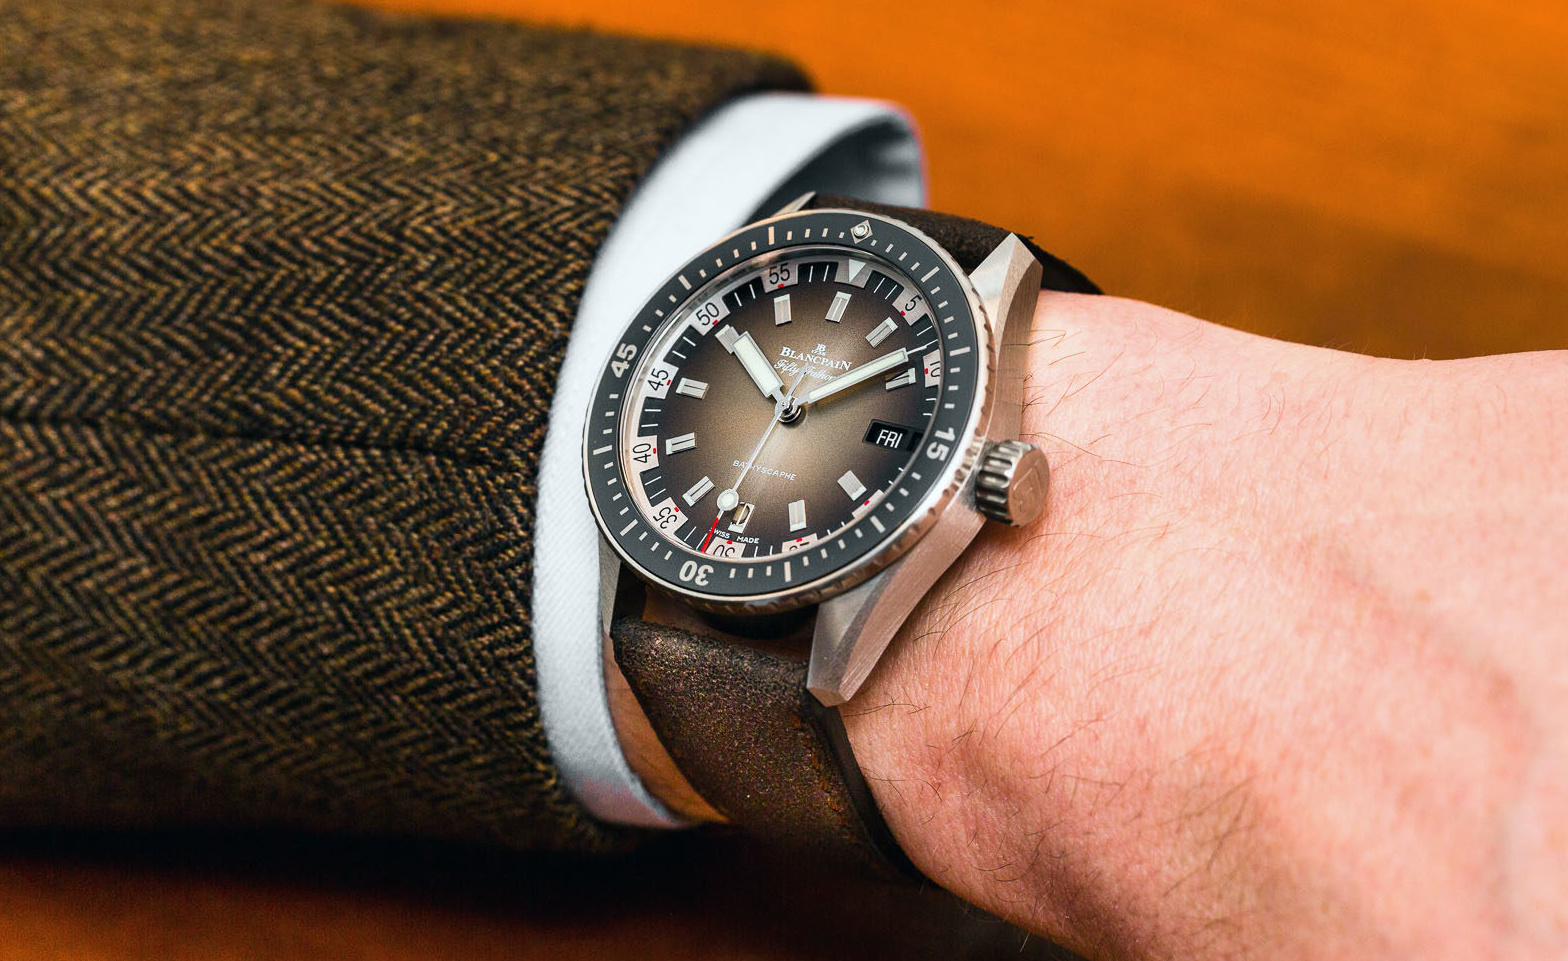 Hands On With The Blancpain Fifty Fathoms Bathyscaphe Day